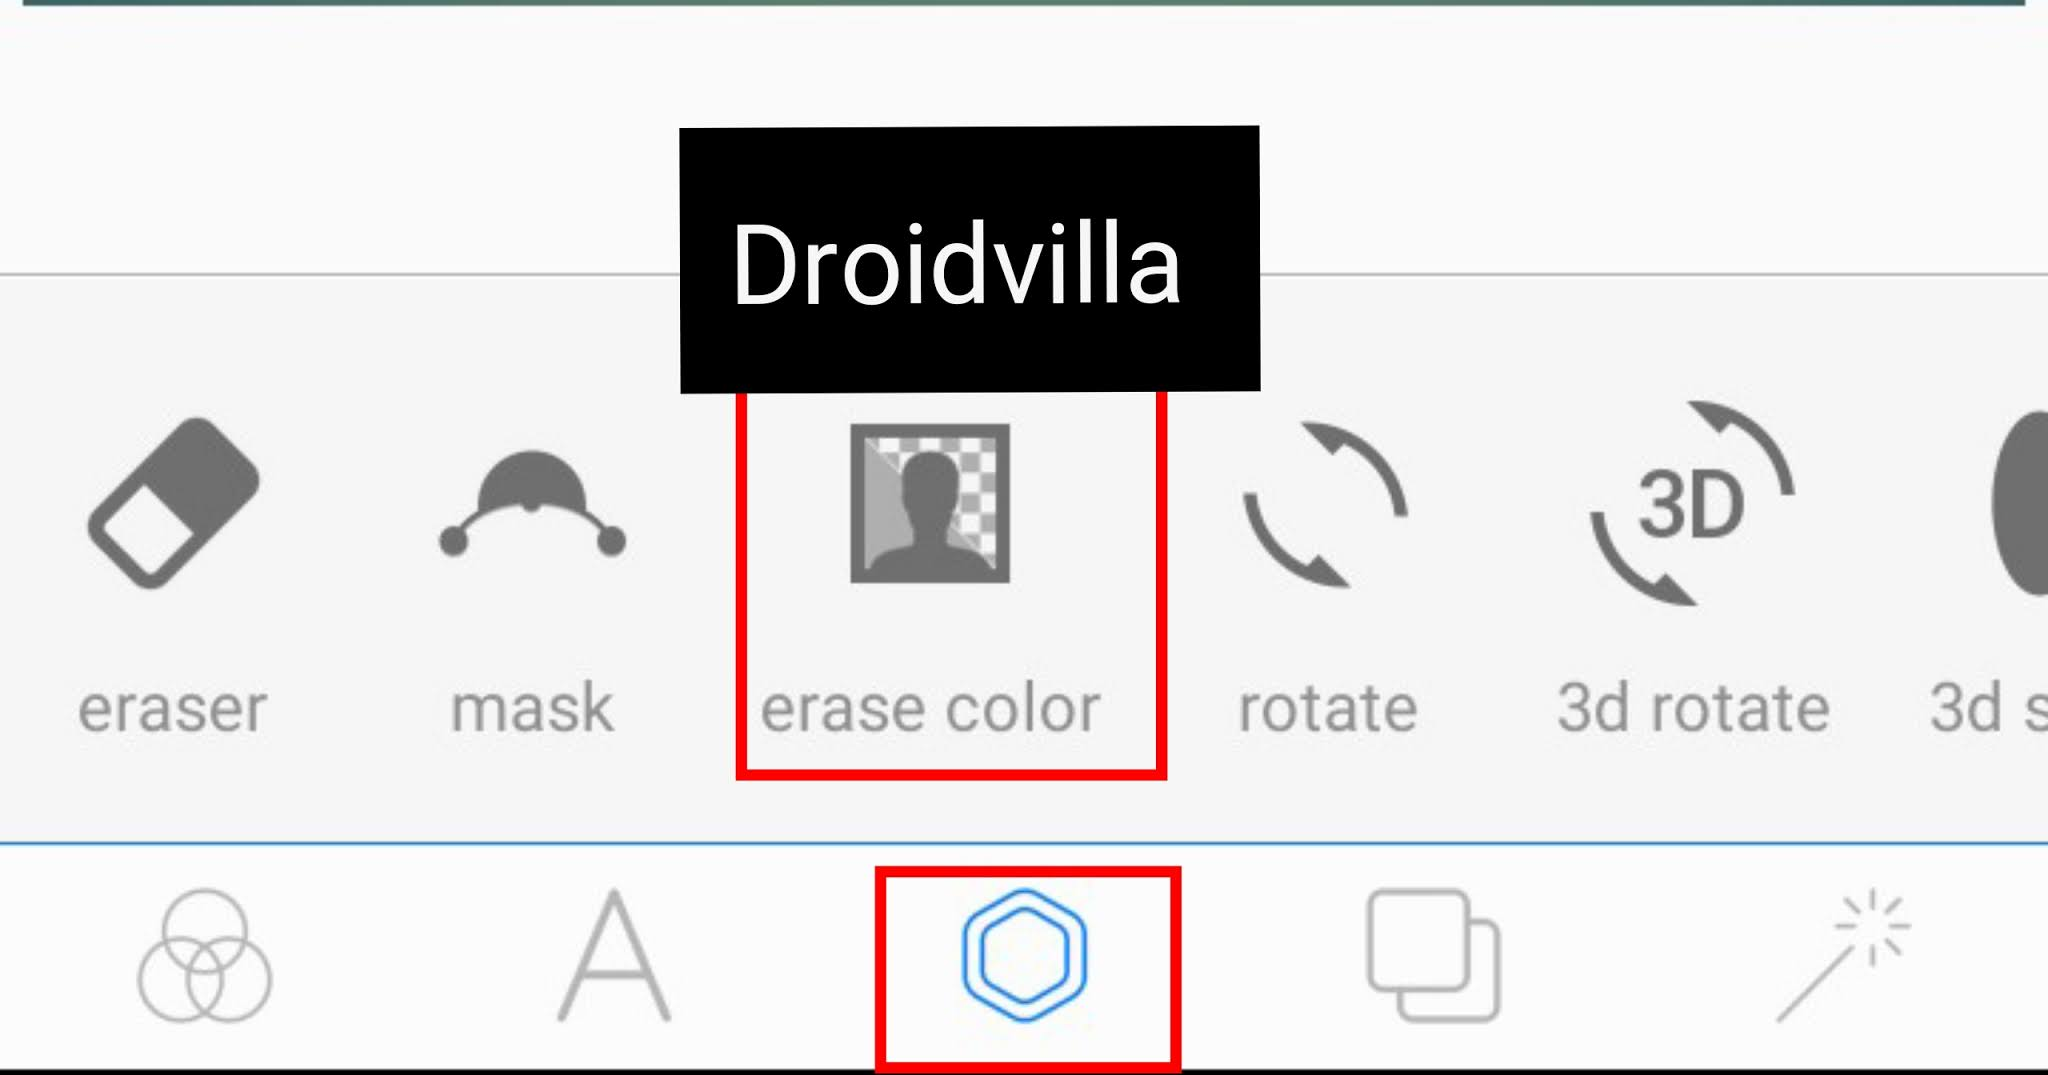 best-background-eraser-android-apk-app-tool-download-droidvilla-technology-solution-android-apk-phone-reviews-technology-updates-tipstricks